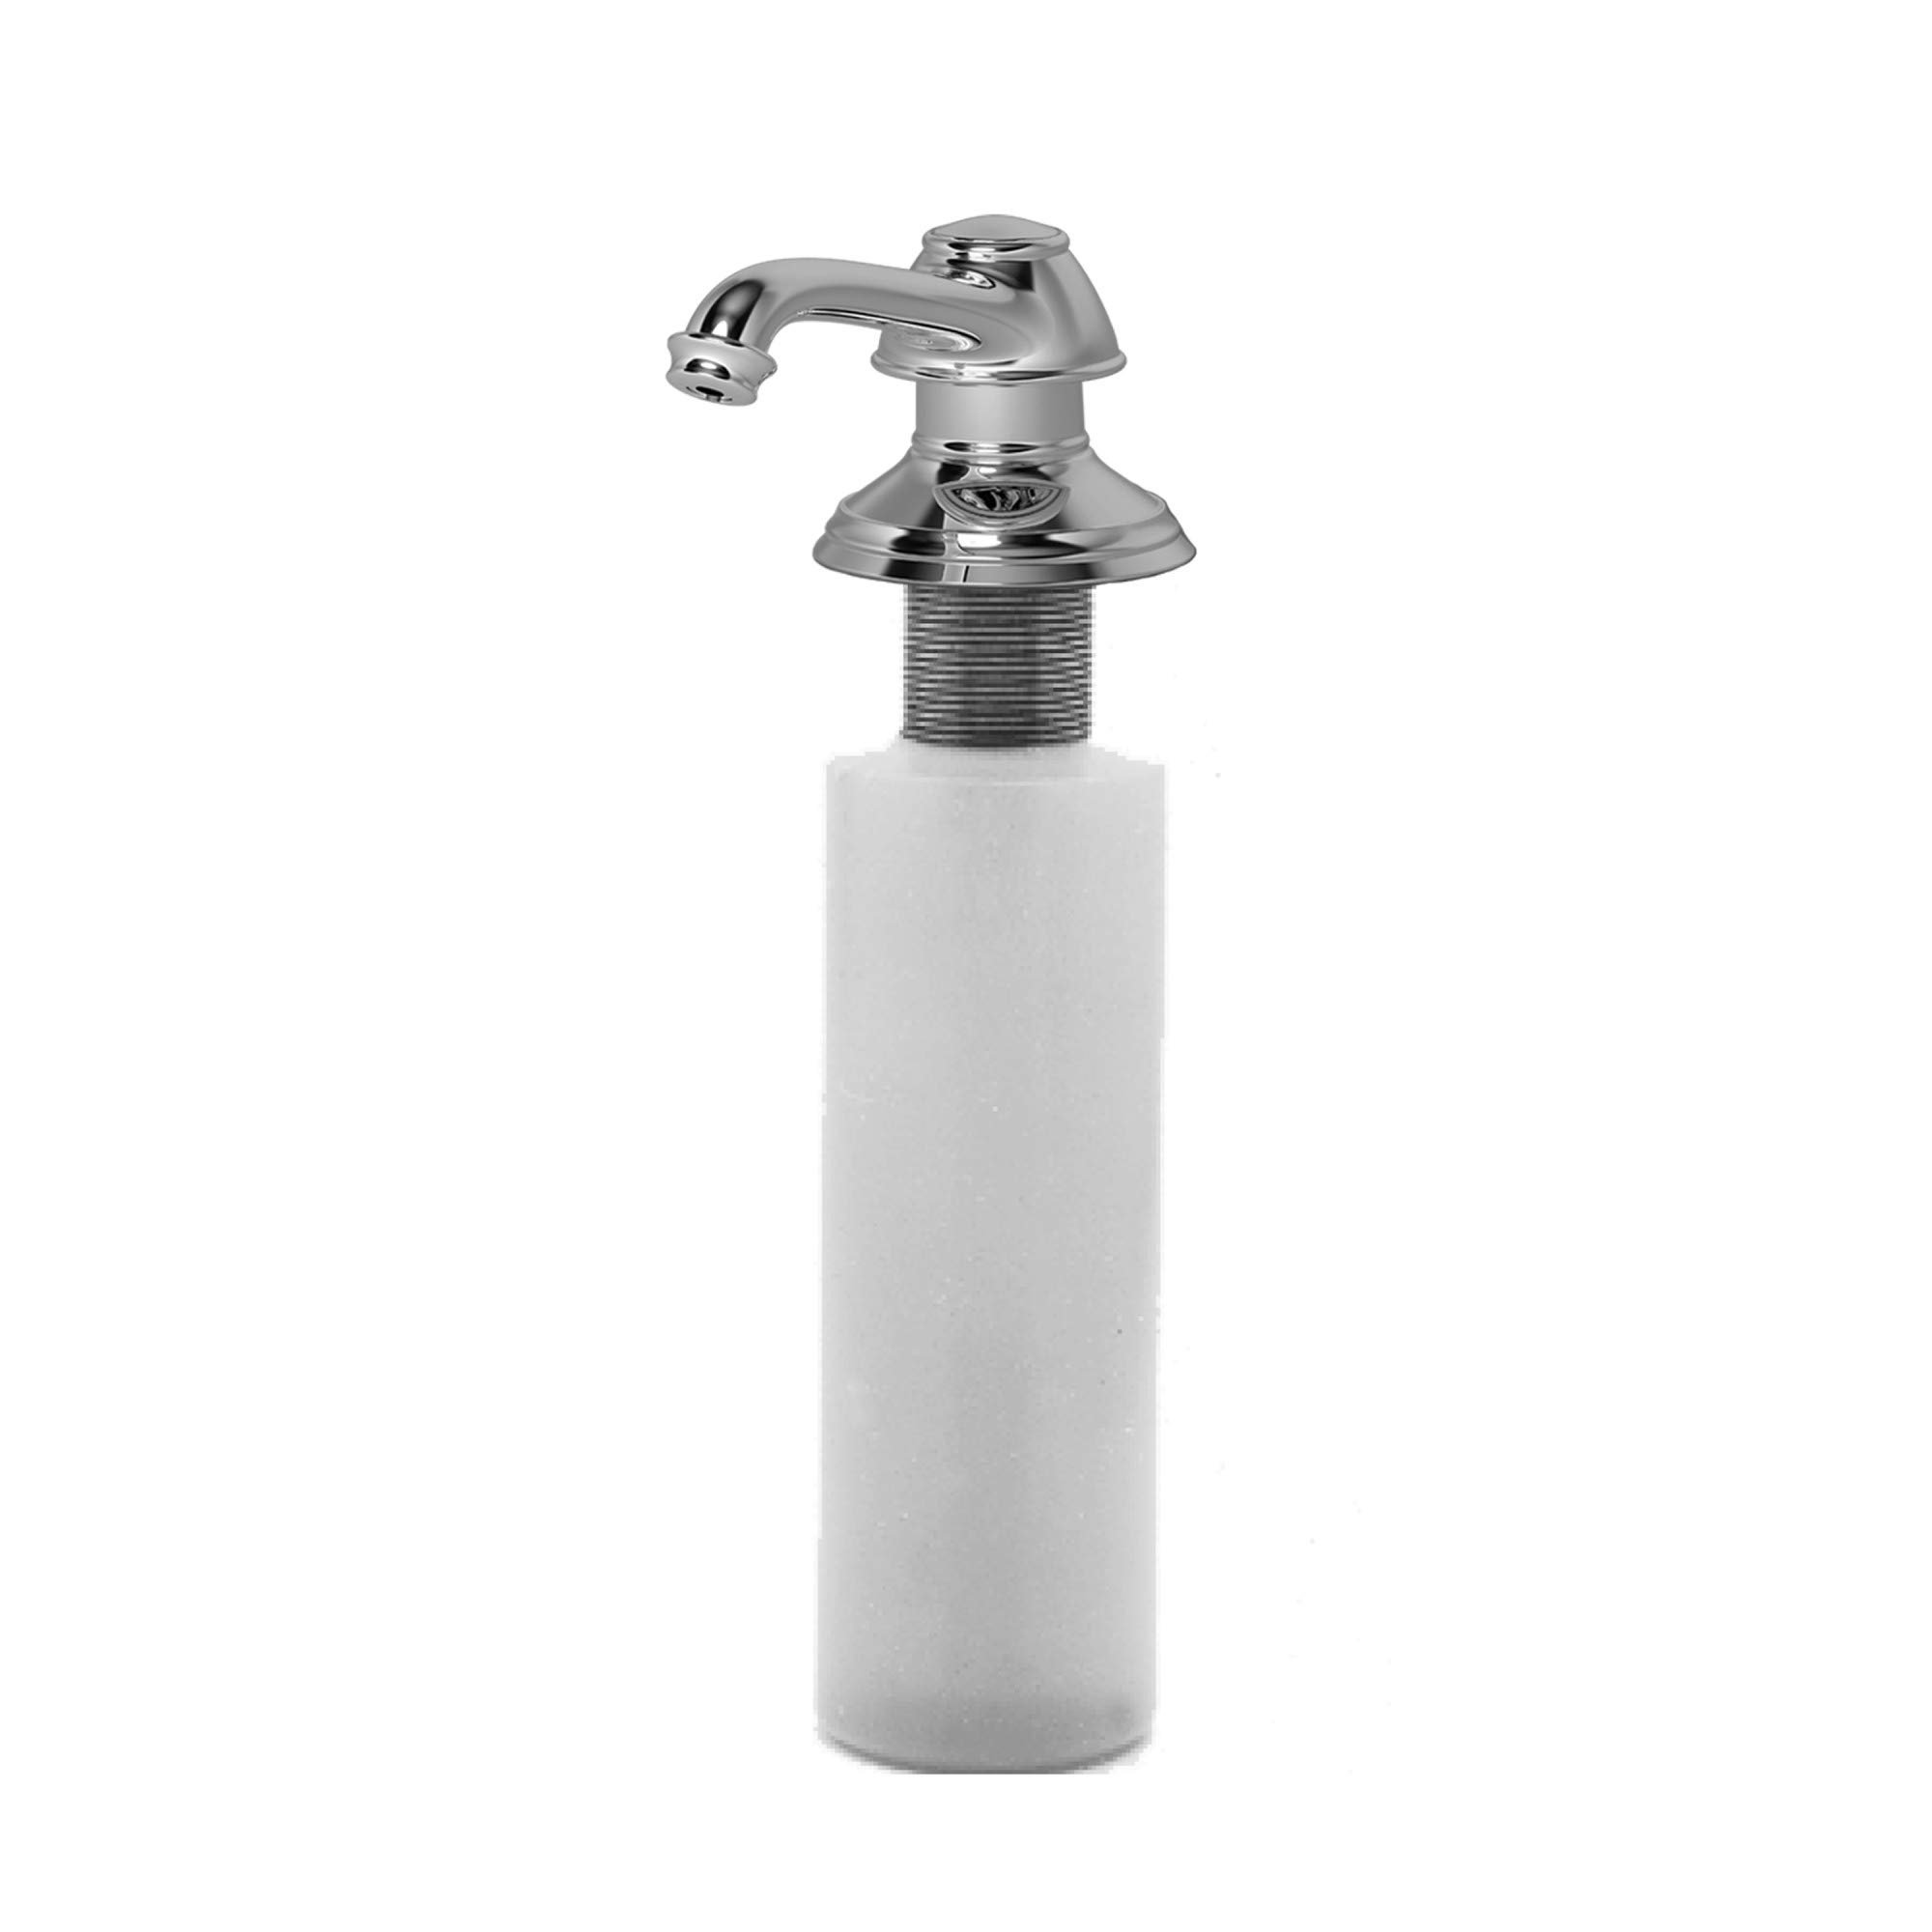 Newport Brass 2470-5721 Jacobean Deck Mounted Soap and Lotion Dispenser, Polished Chrome